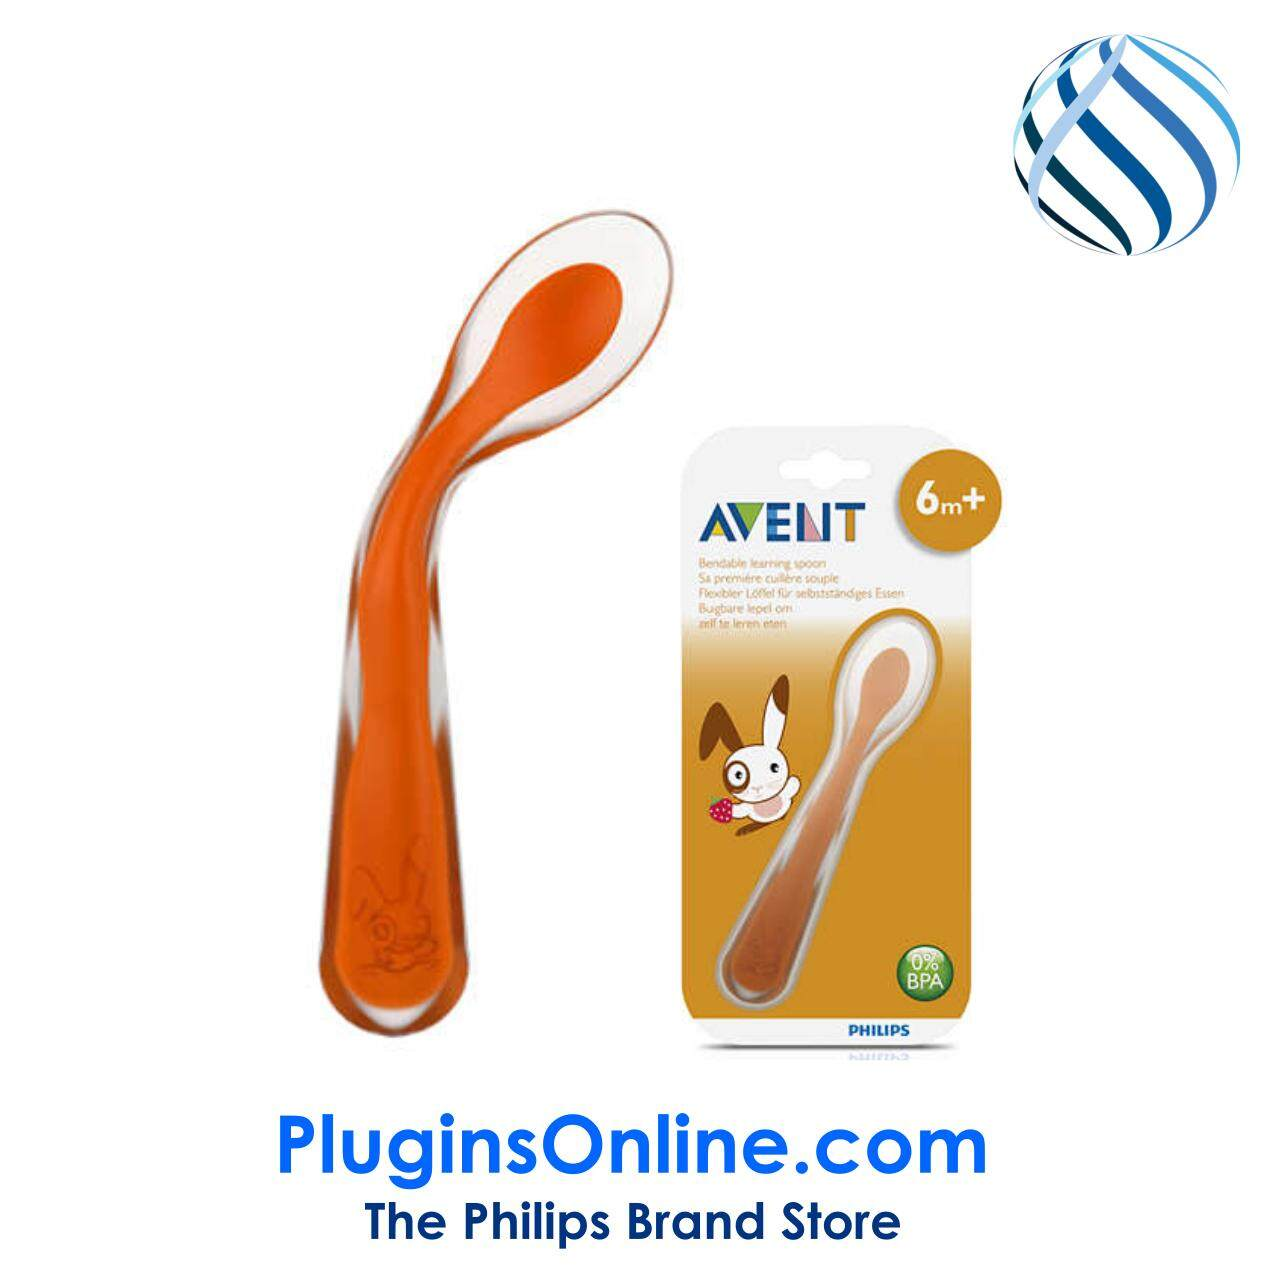 PHILIPS AVENT SCF722/00 Customizable learning spoon 6m+ (SCF722)